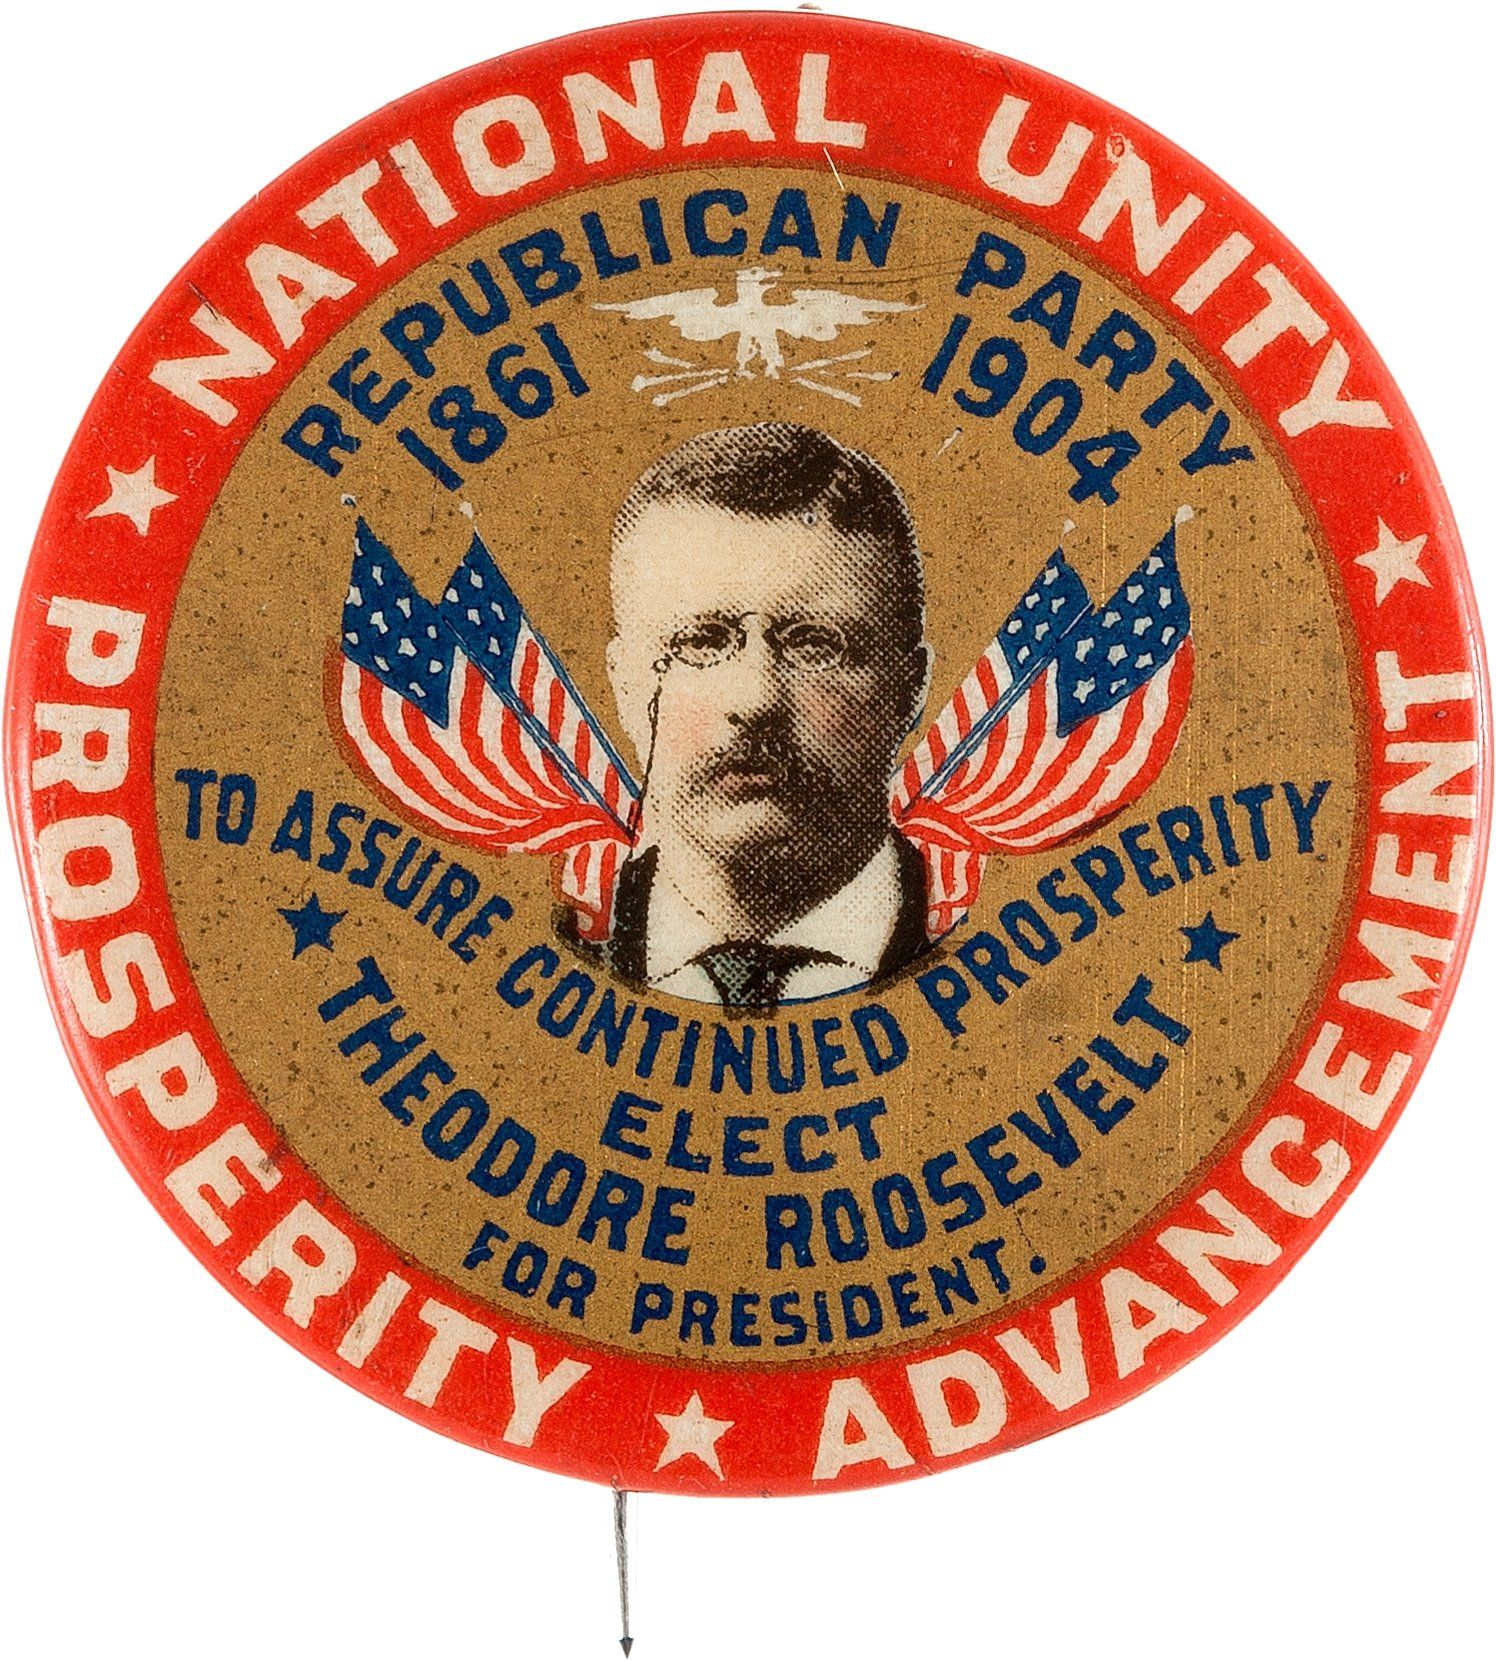 Theodore Roosevelt Campaign Button